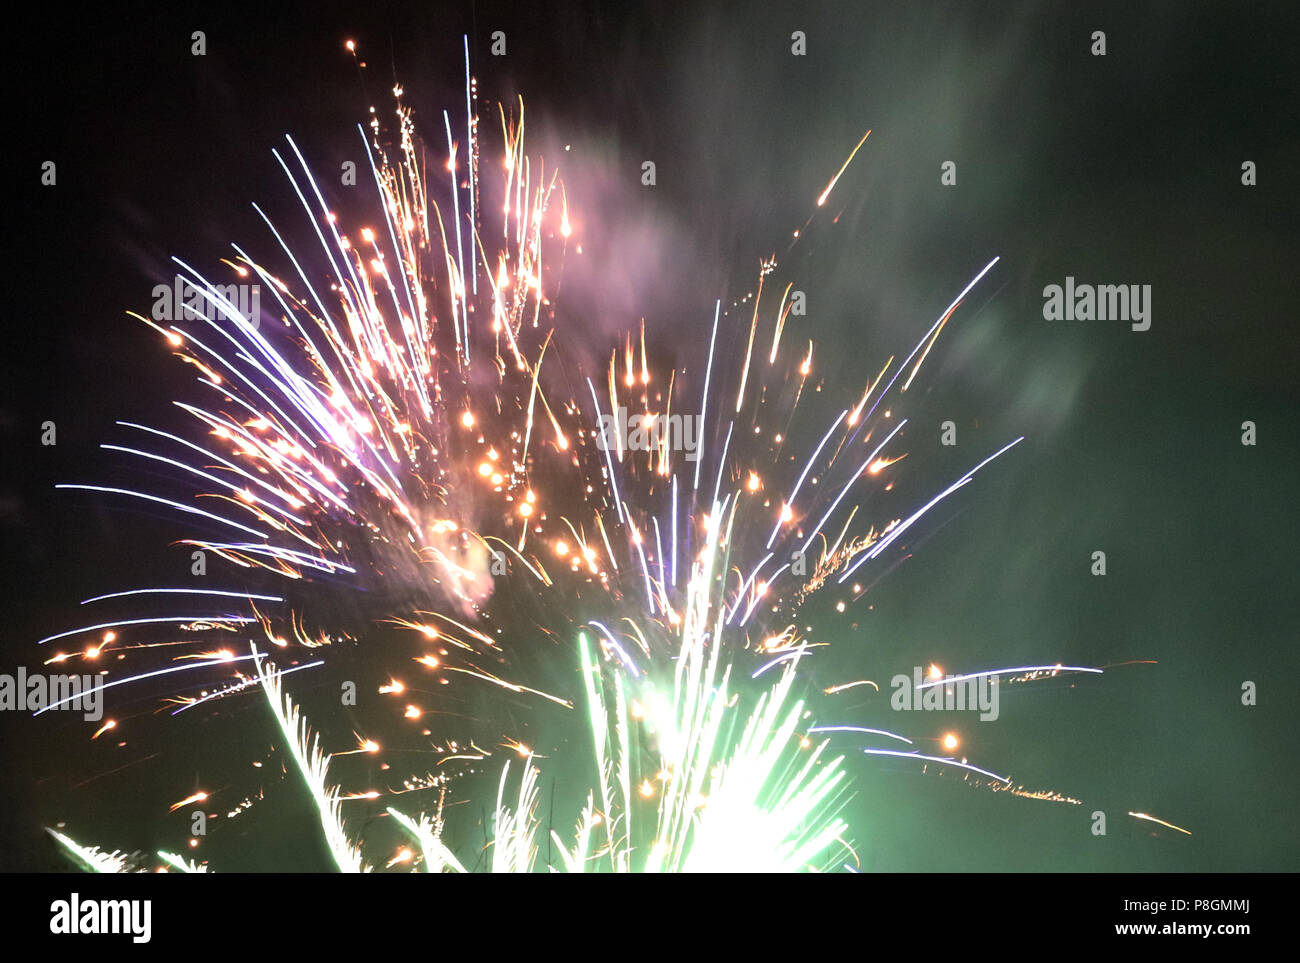 Berlin, Germany, fine dust development at New Year's Eve fireworks - Stock Image